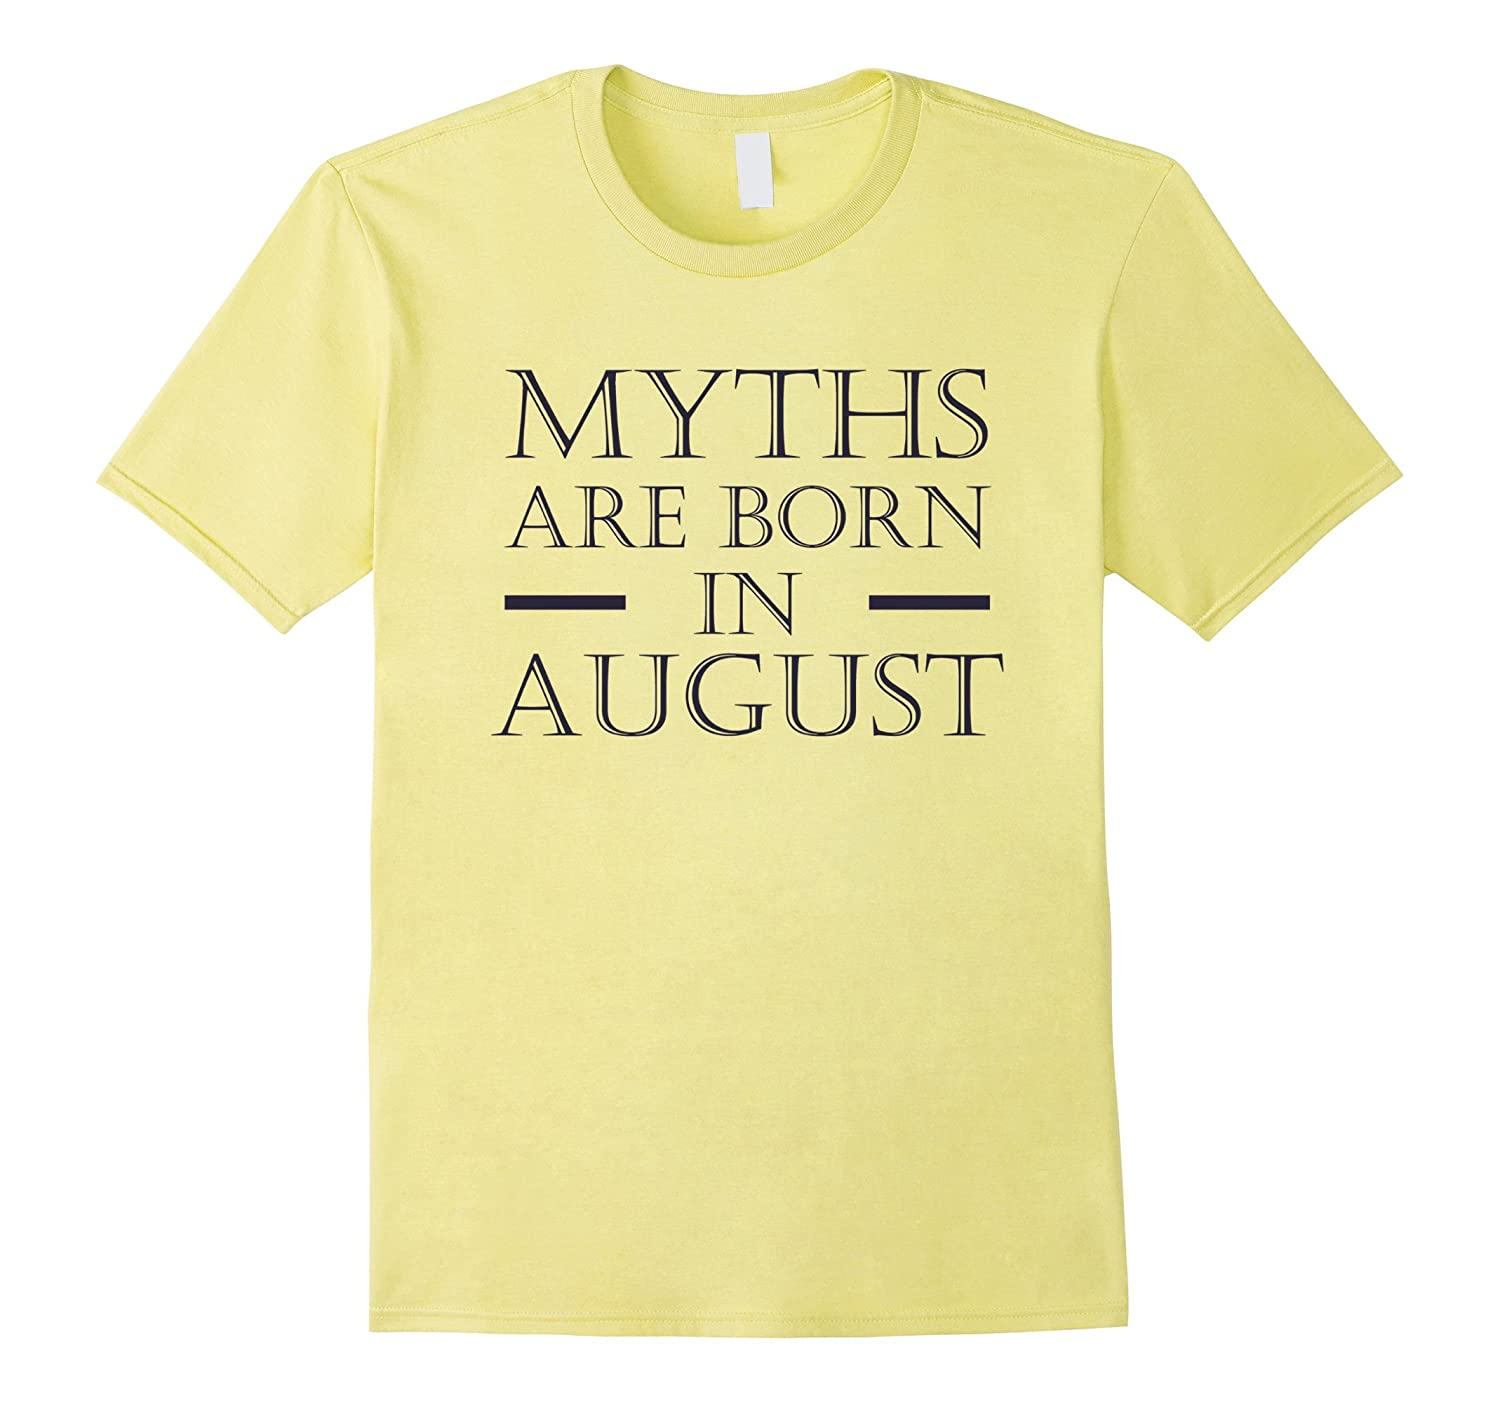 Myths Are Born in August T-shirt Fashion Birthday Top Tee-Teevkd